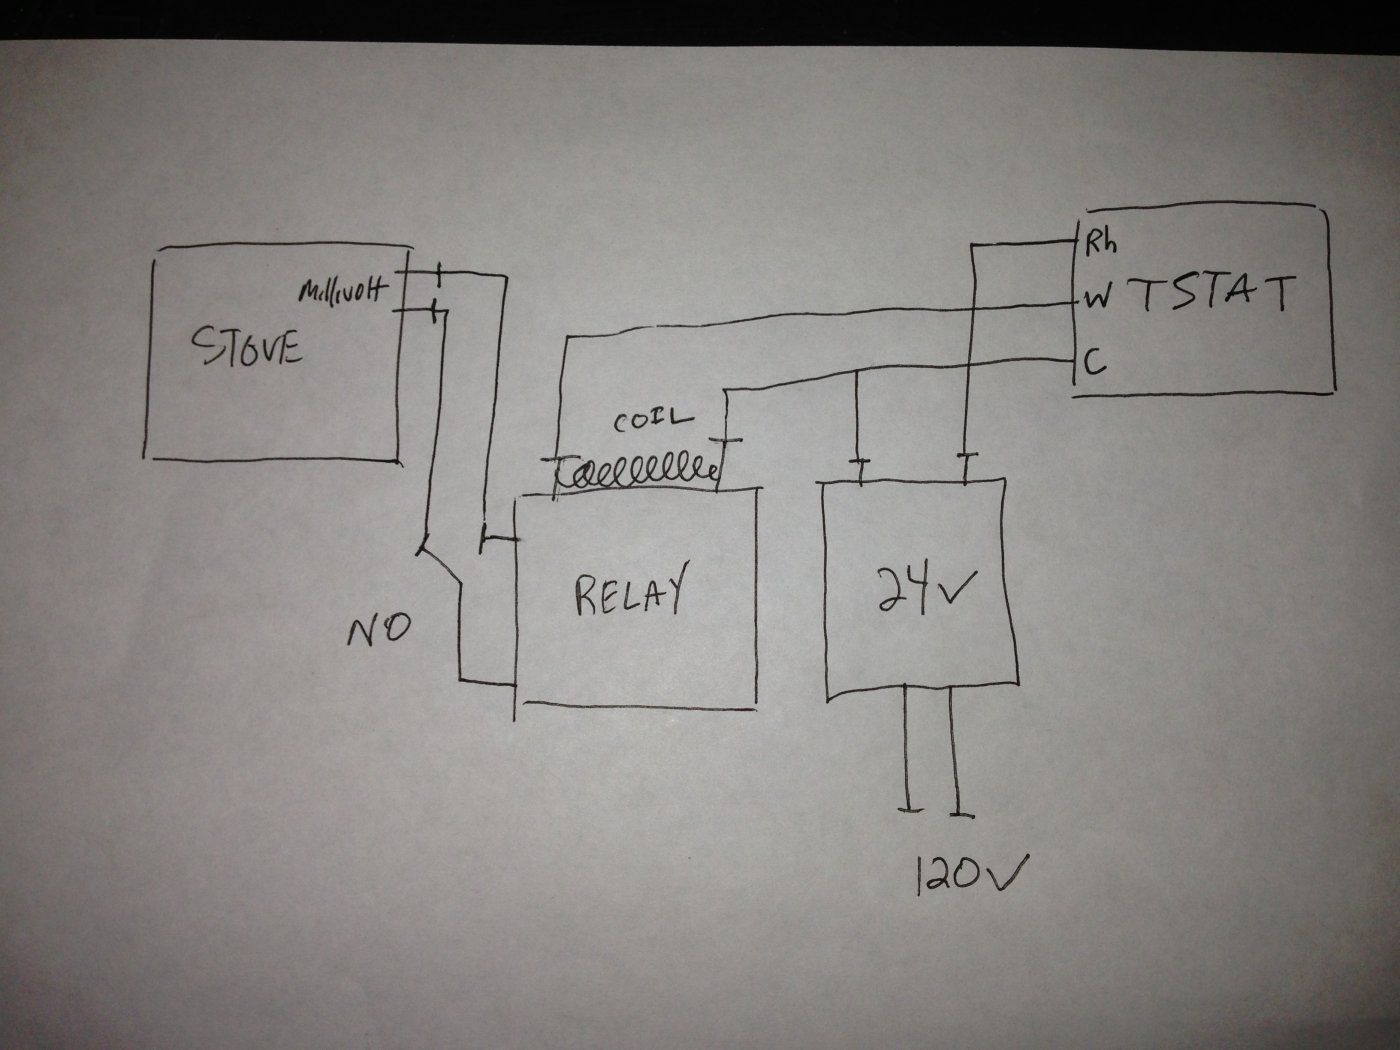 installing 24 volt wifi thermostat on millivolt stoves page 4 white rodgers 90 113 wiring diagram at pacquiaovsvargaslive.co